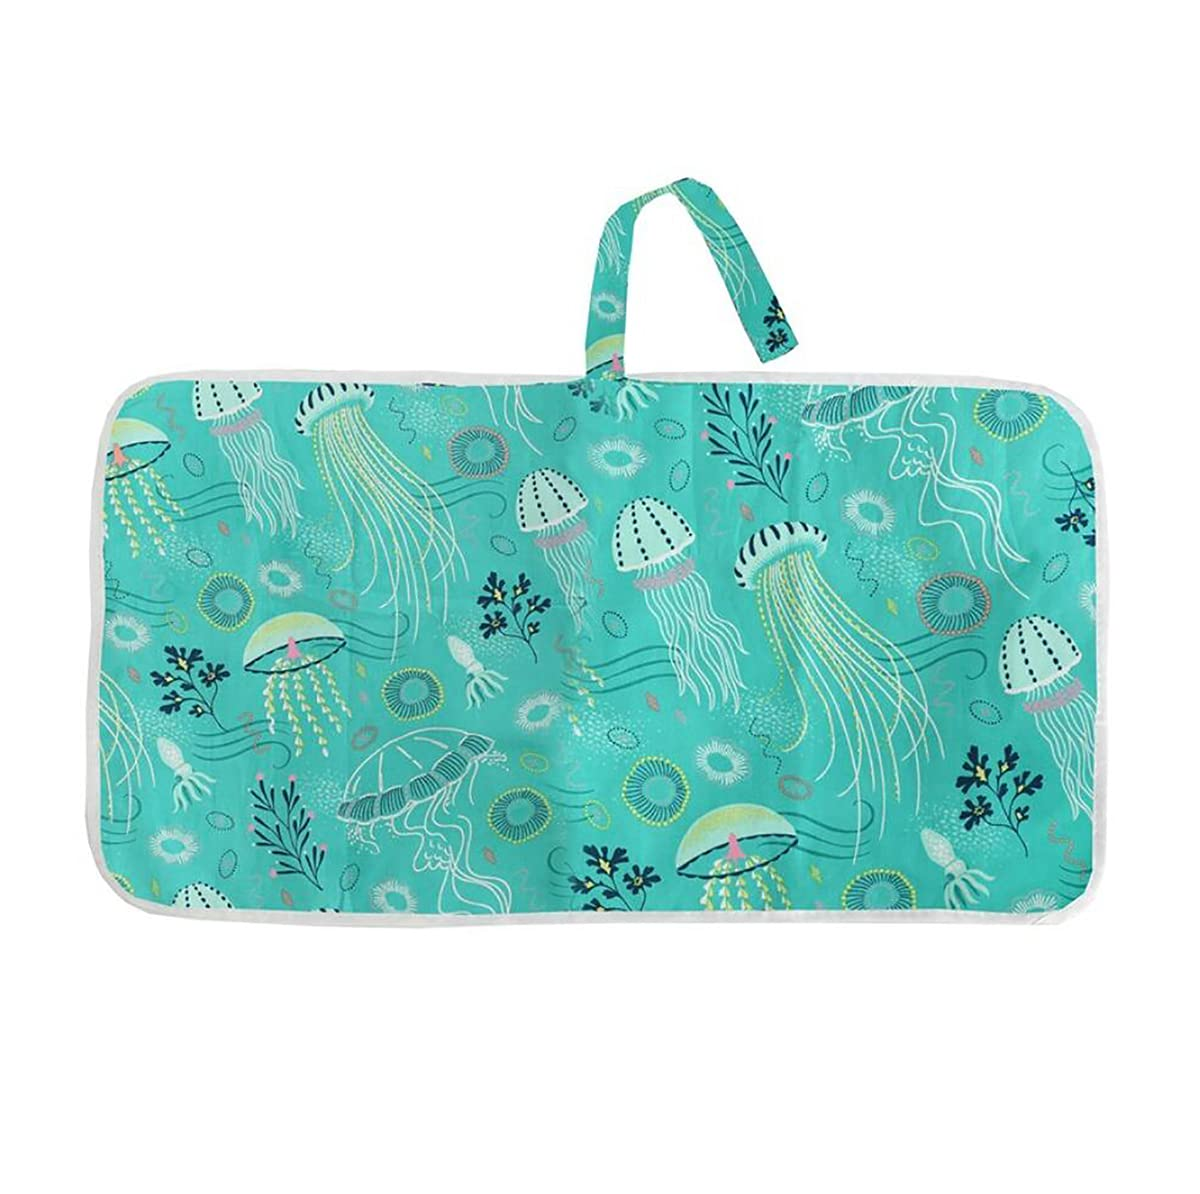 Portable Diaper Max 56% OFF Changing Pad Foldable Baby trust Waterproof -